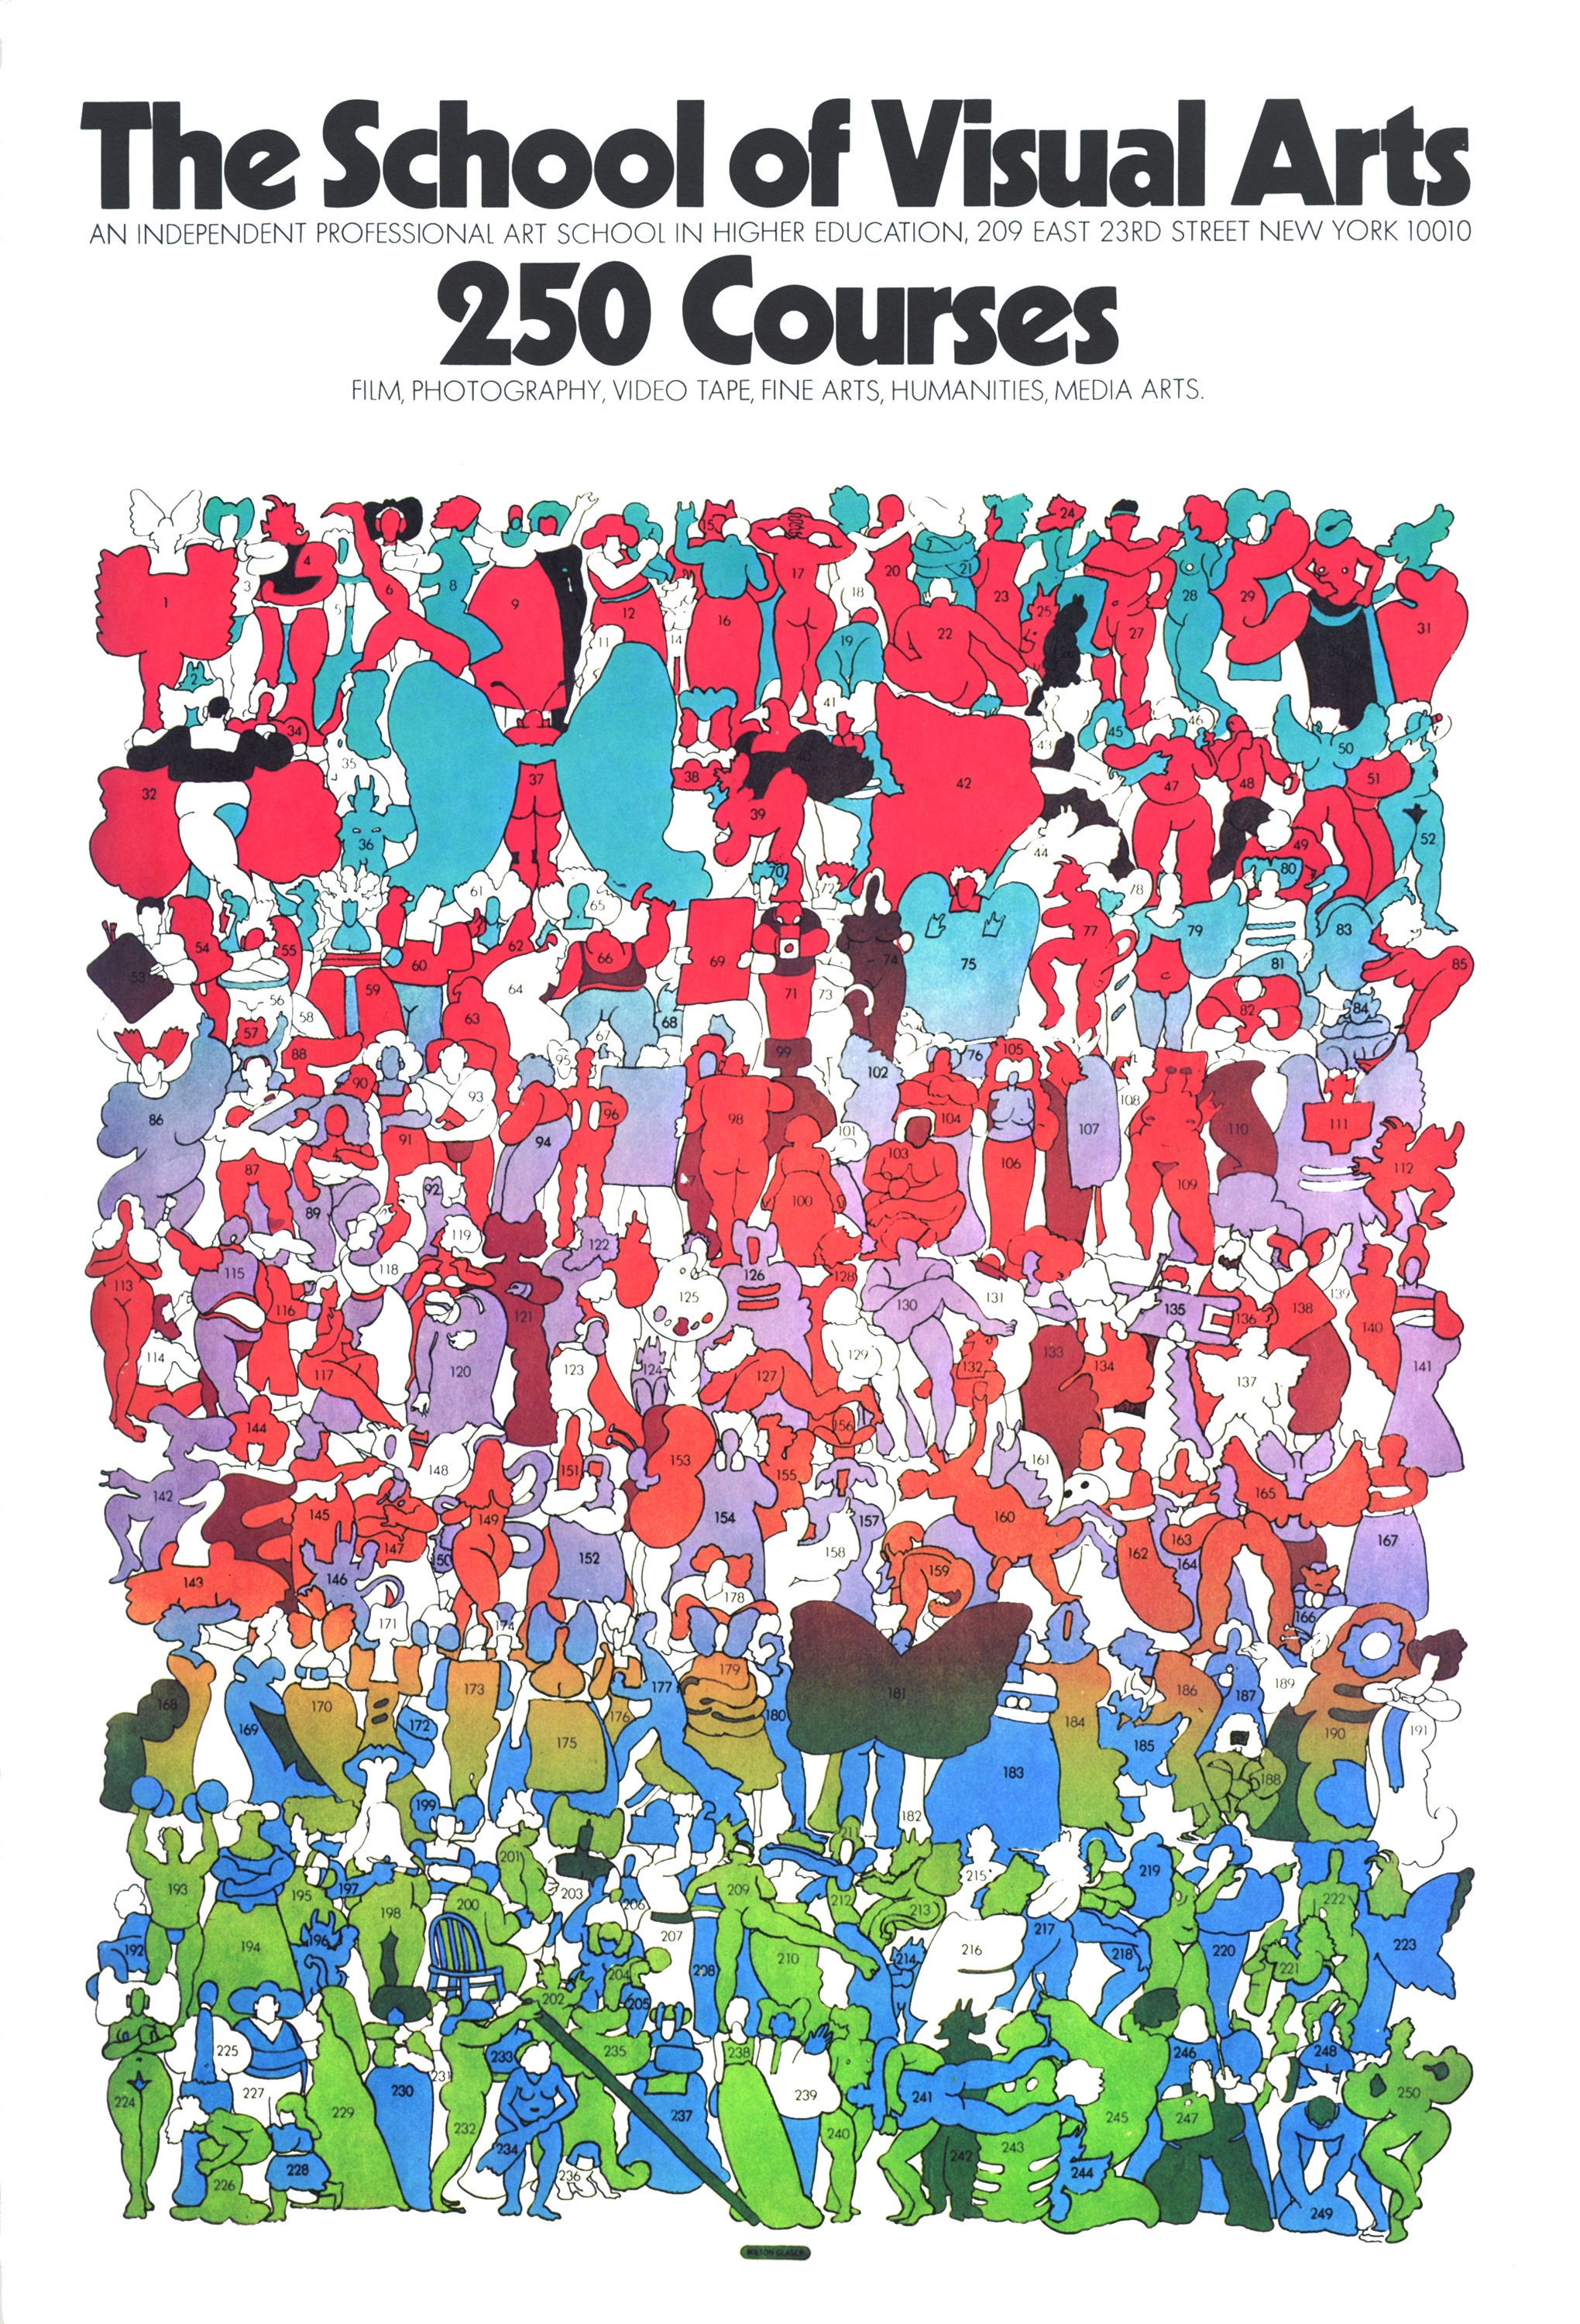 Colorful illustration of a menagerie of 250 nude, semi-nude and costumed figures, each with a number on them.